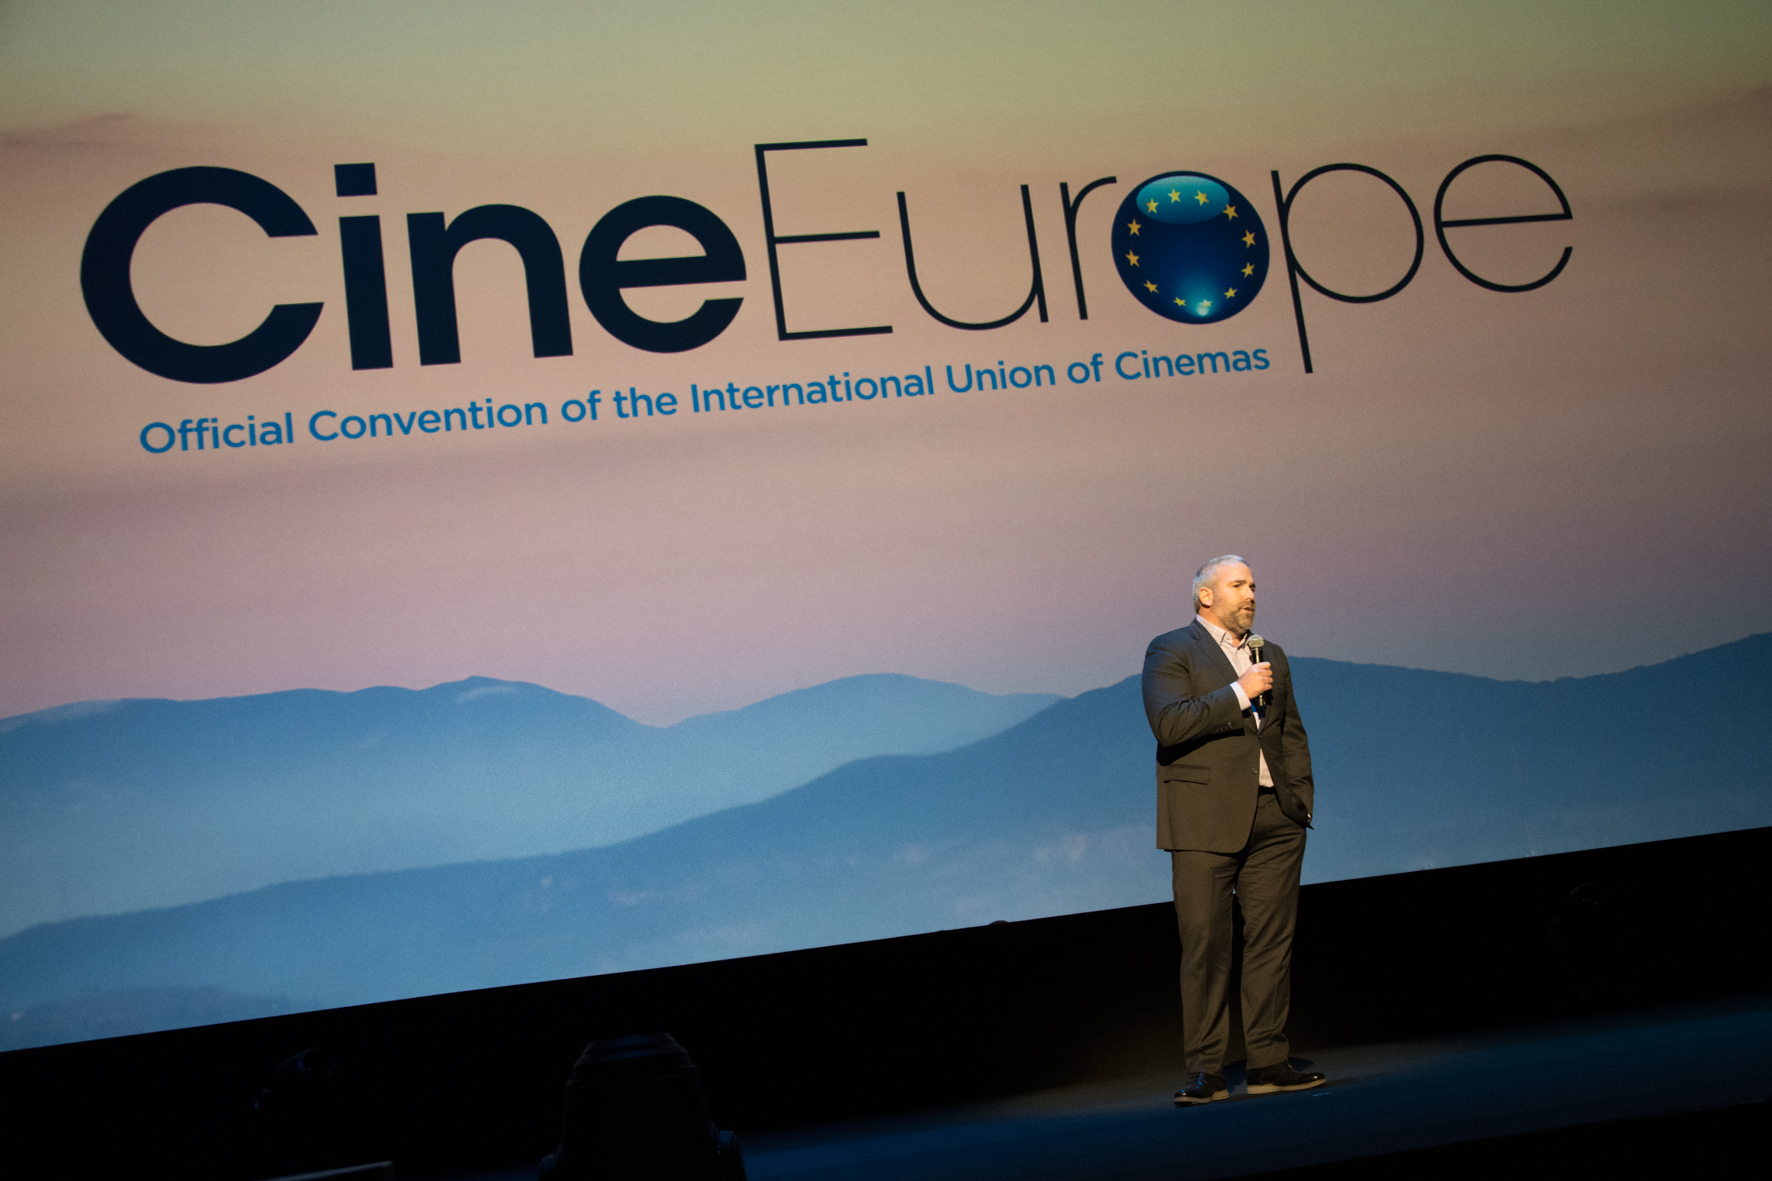 CineEurope Conference - 28 Years of Promoting European Cinema